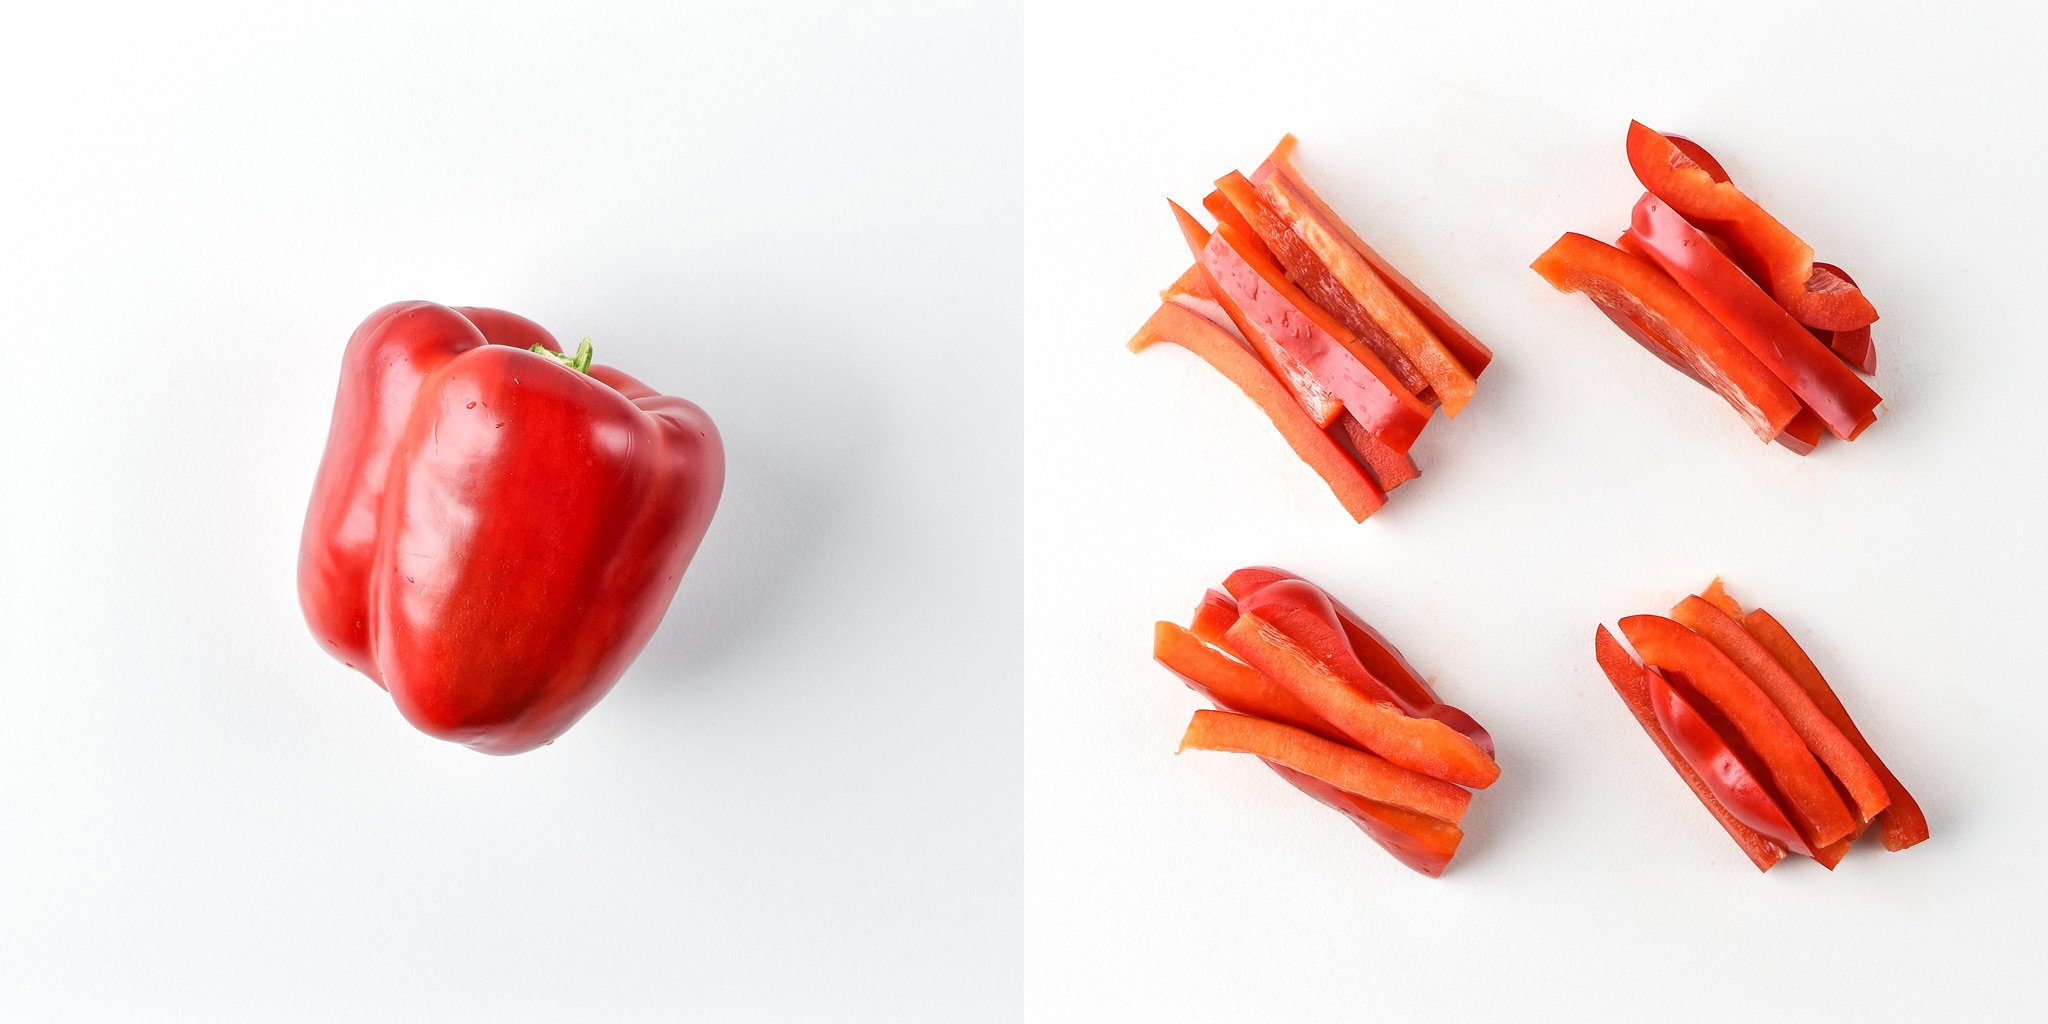 Red bell pepper before and after portioning for the Chicken & Hummus Plate Lunch Meal prep